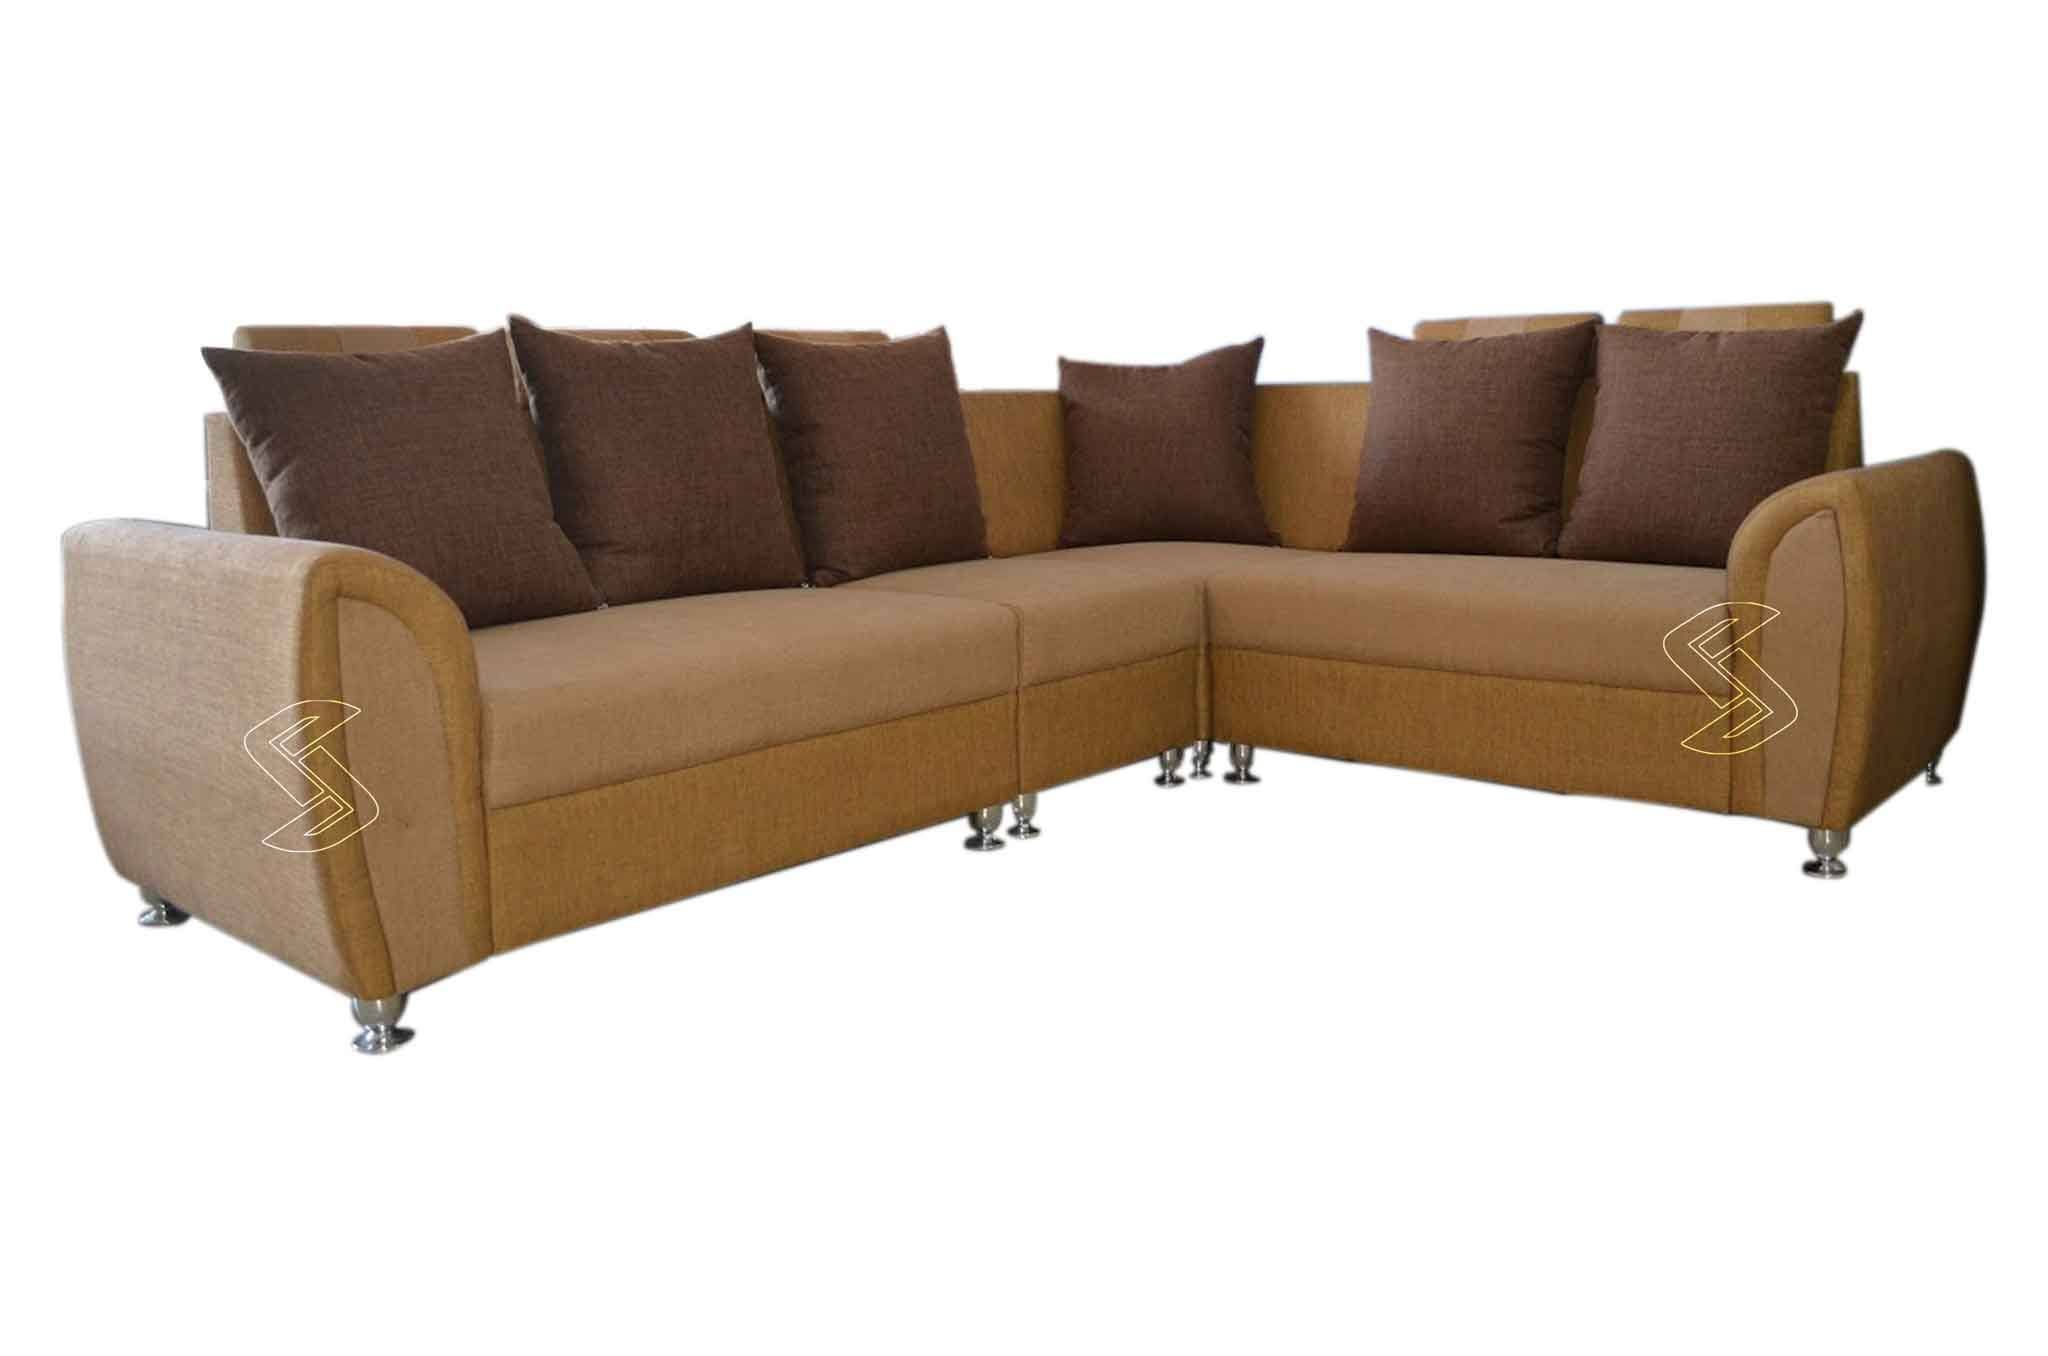 chaise barkley sofa sectional side laf ca pc bryant lovely fresno lshaped large flexsteel sofas with by right contemporary loveseat shaped l